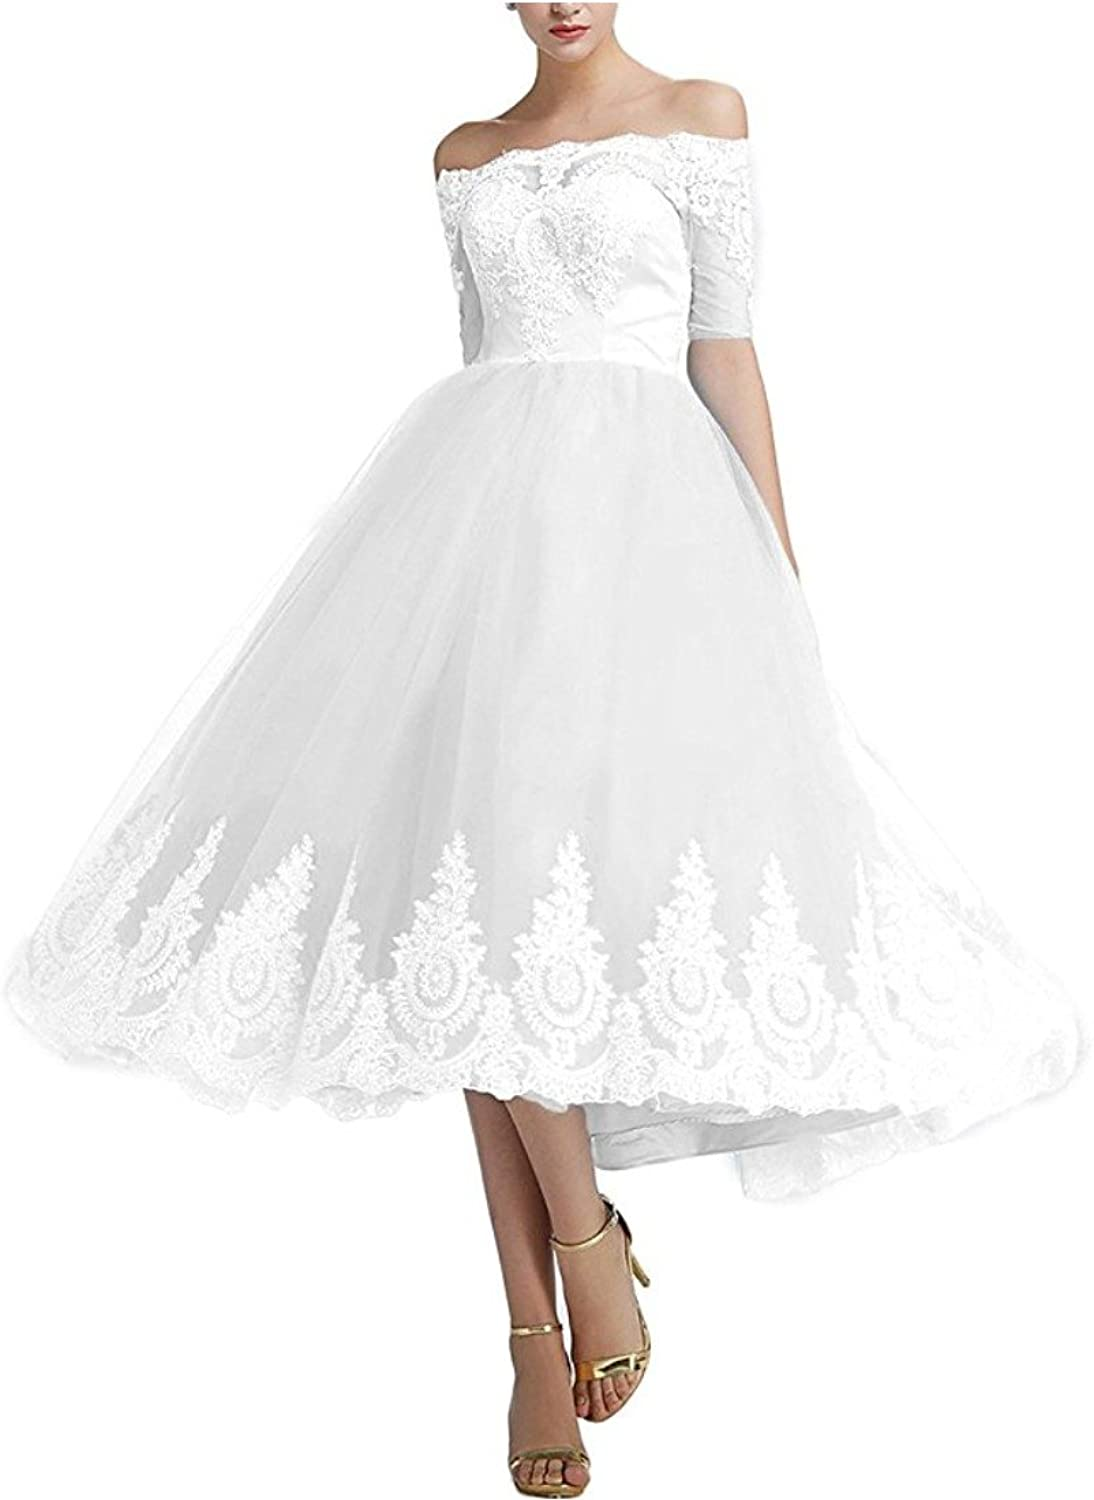 Beilite Women's Off Shoulder Tea Length Lace Prom Party Dresses with Sleeves